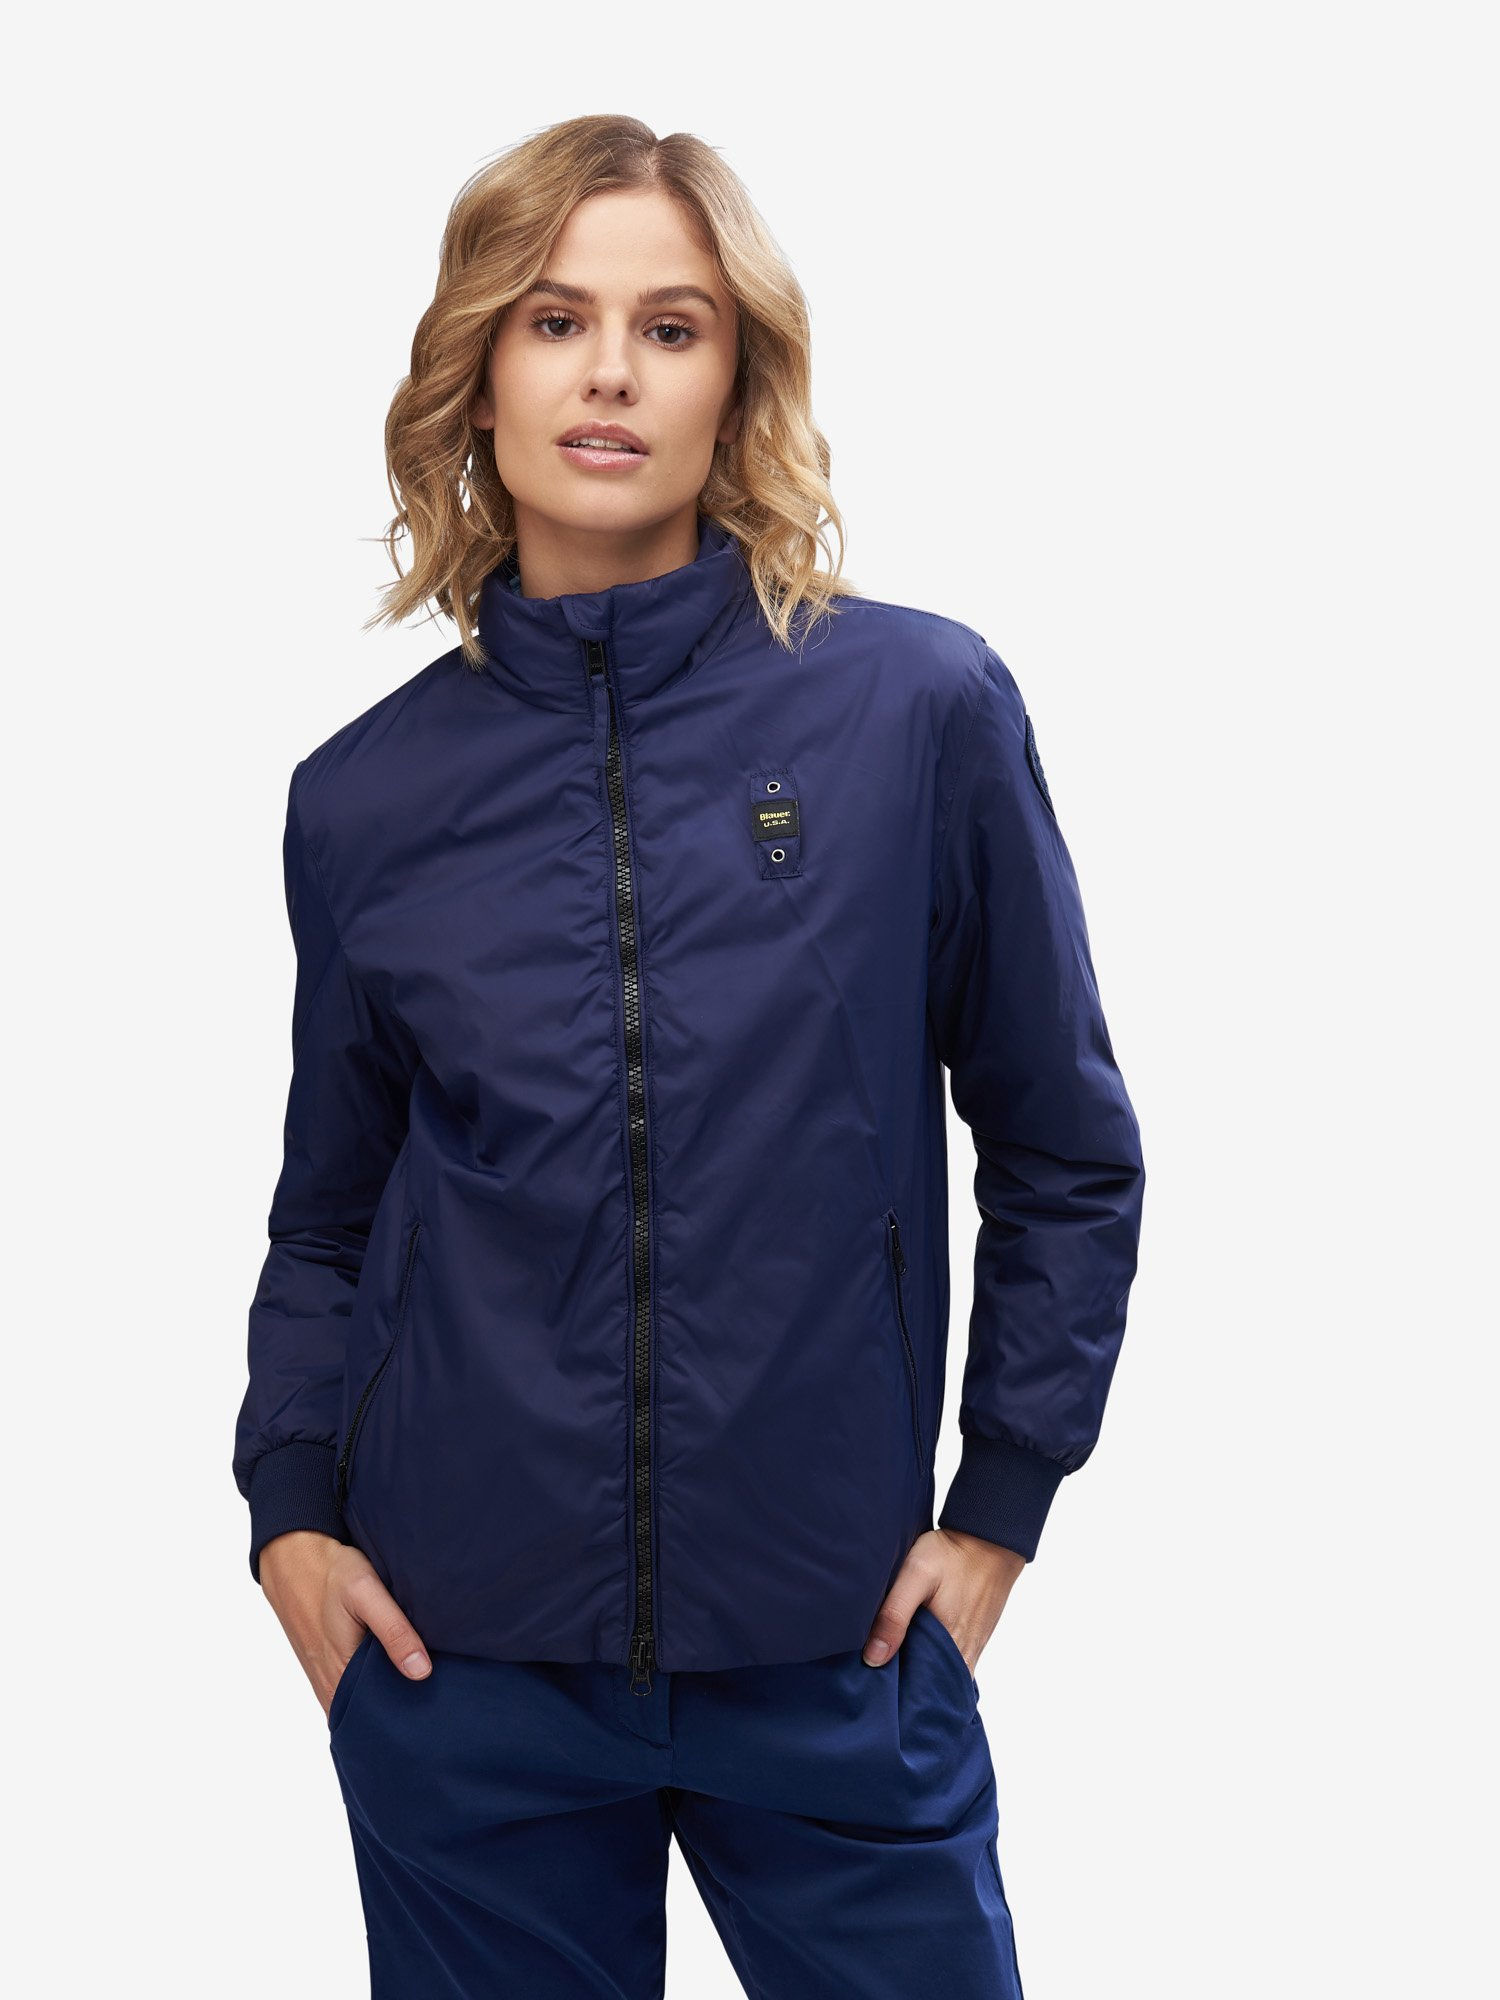 NICCOLS 100% RECYCLED JACKET - Blauer